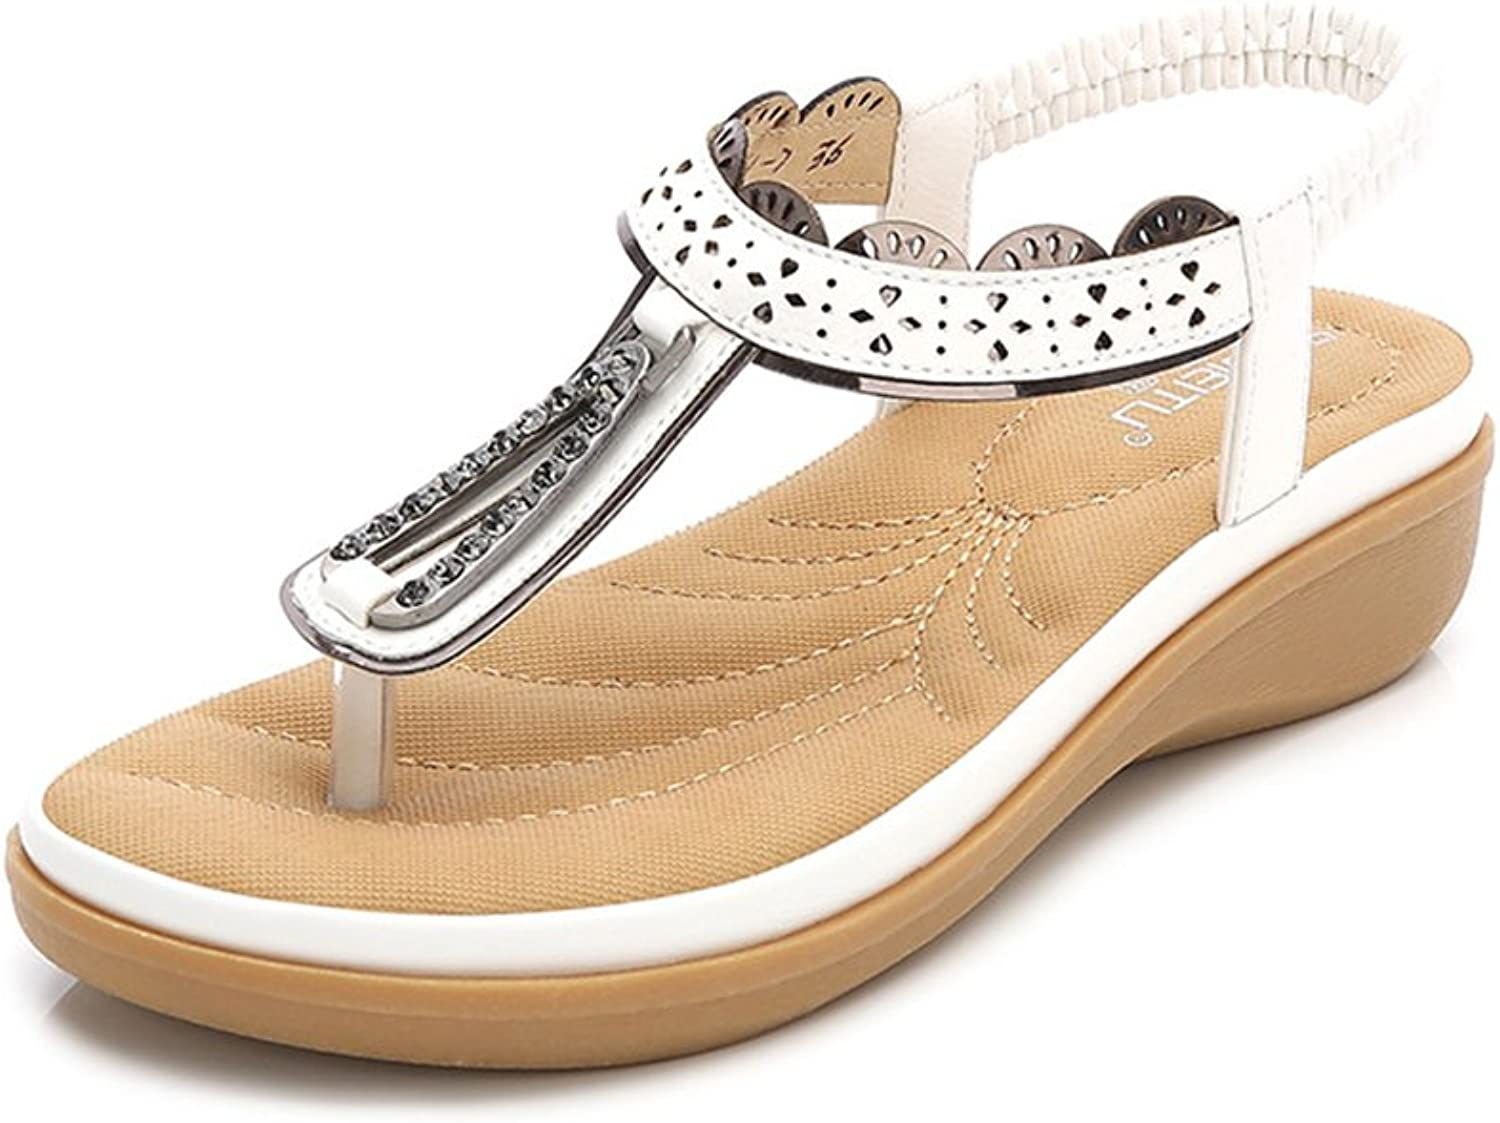 Baviue Women's Leather Fashion Summer Sandals Thong Sandles